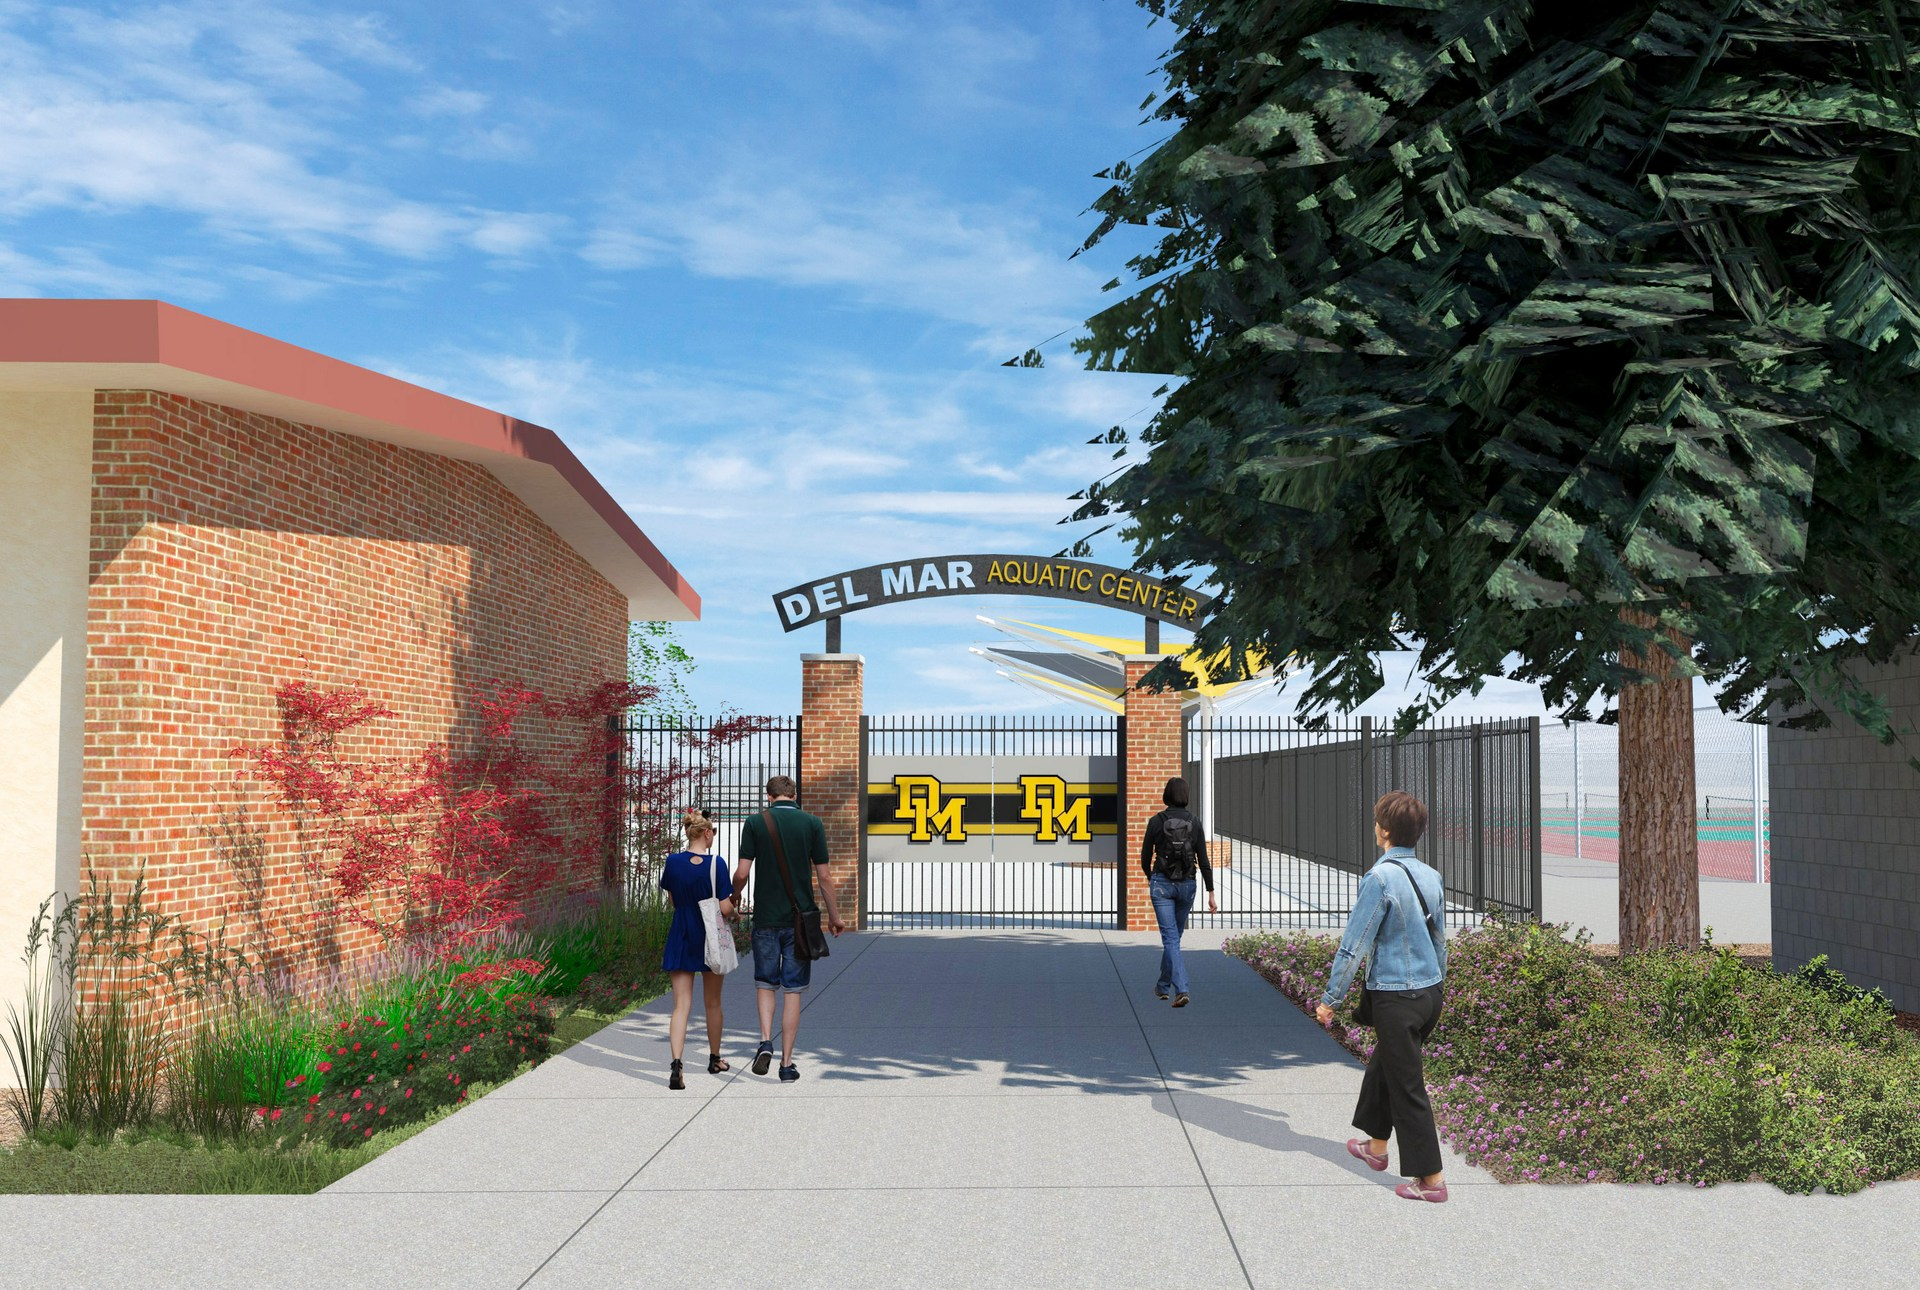 Image of new aquatic center entrance design